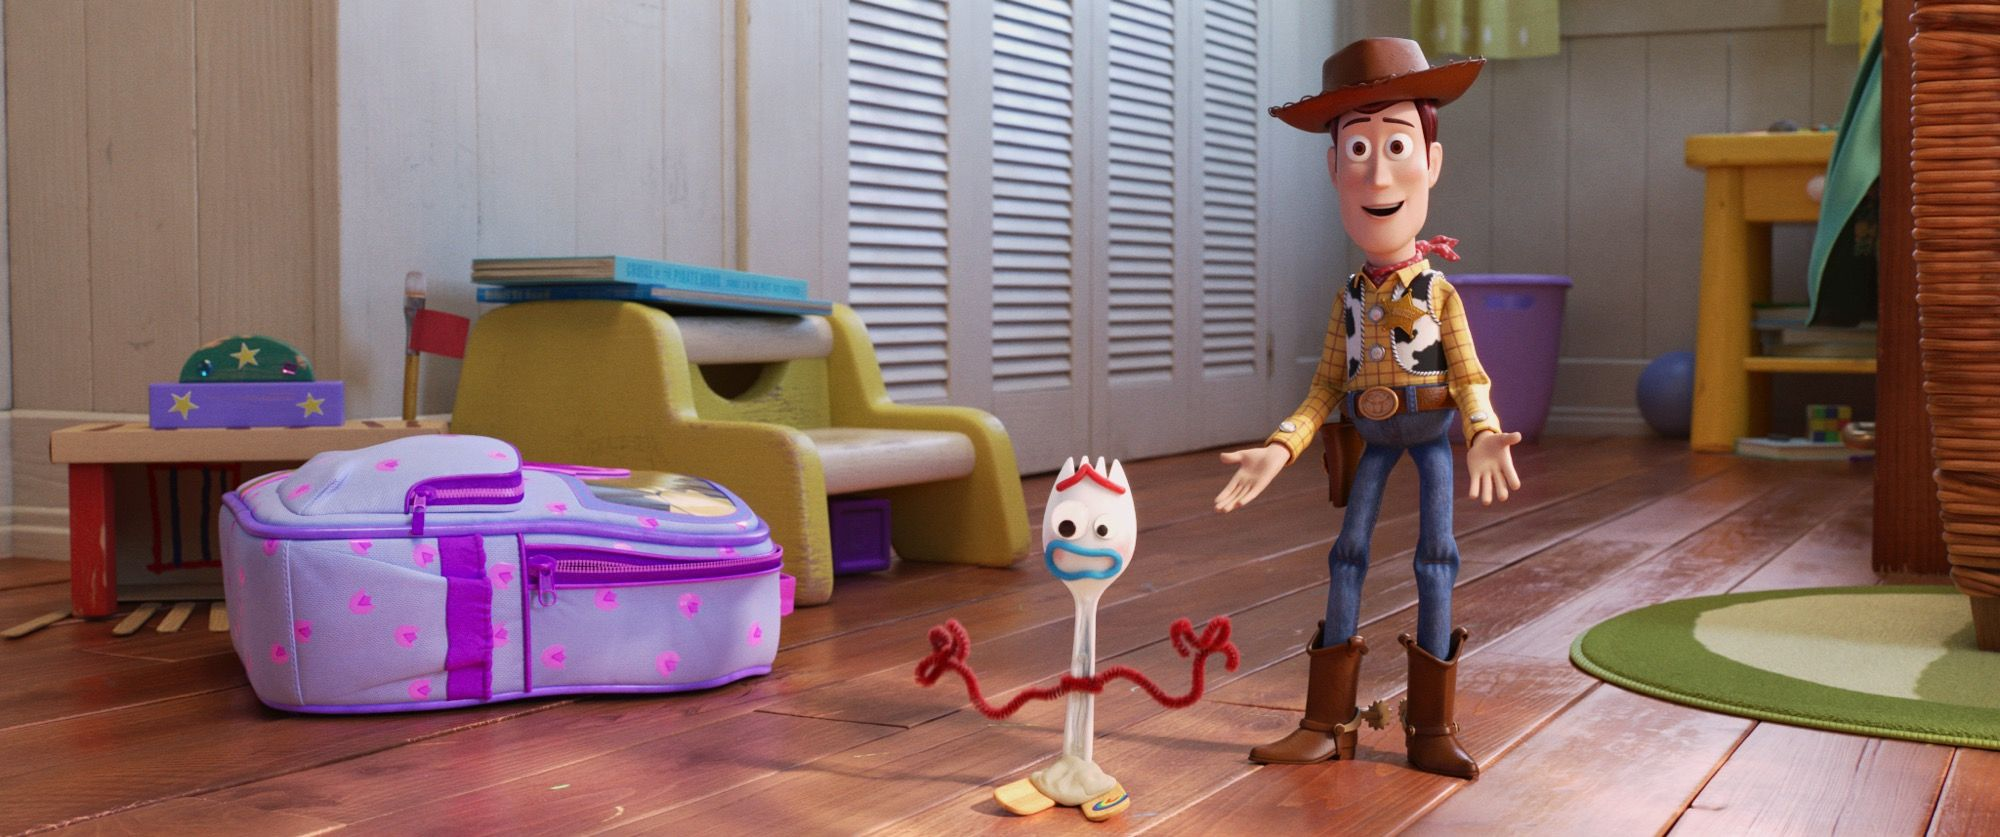 toy story 2 watch online tubeplus